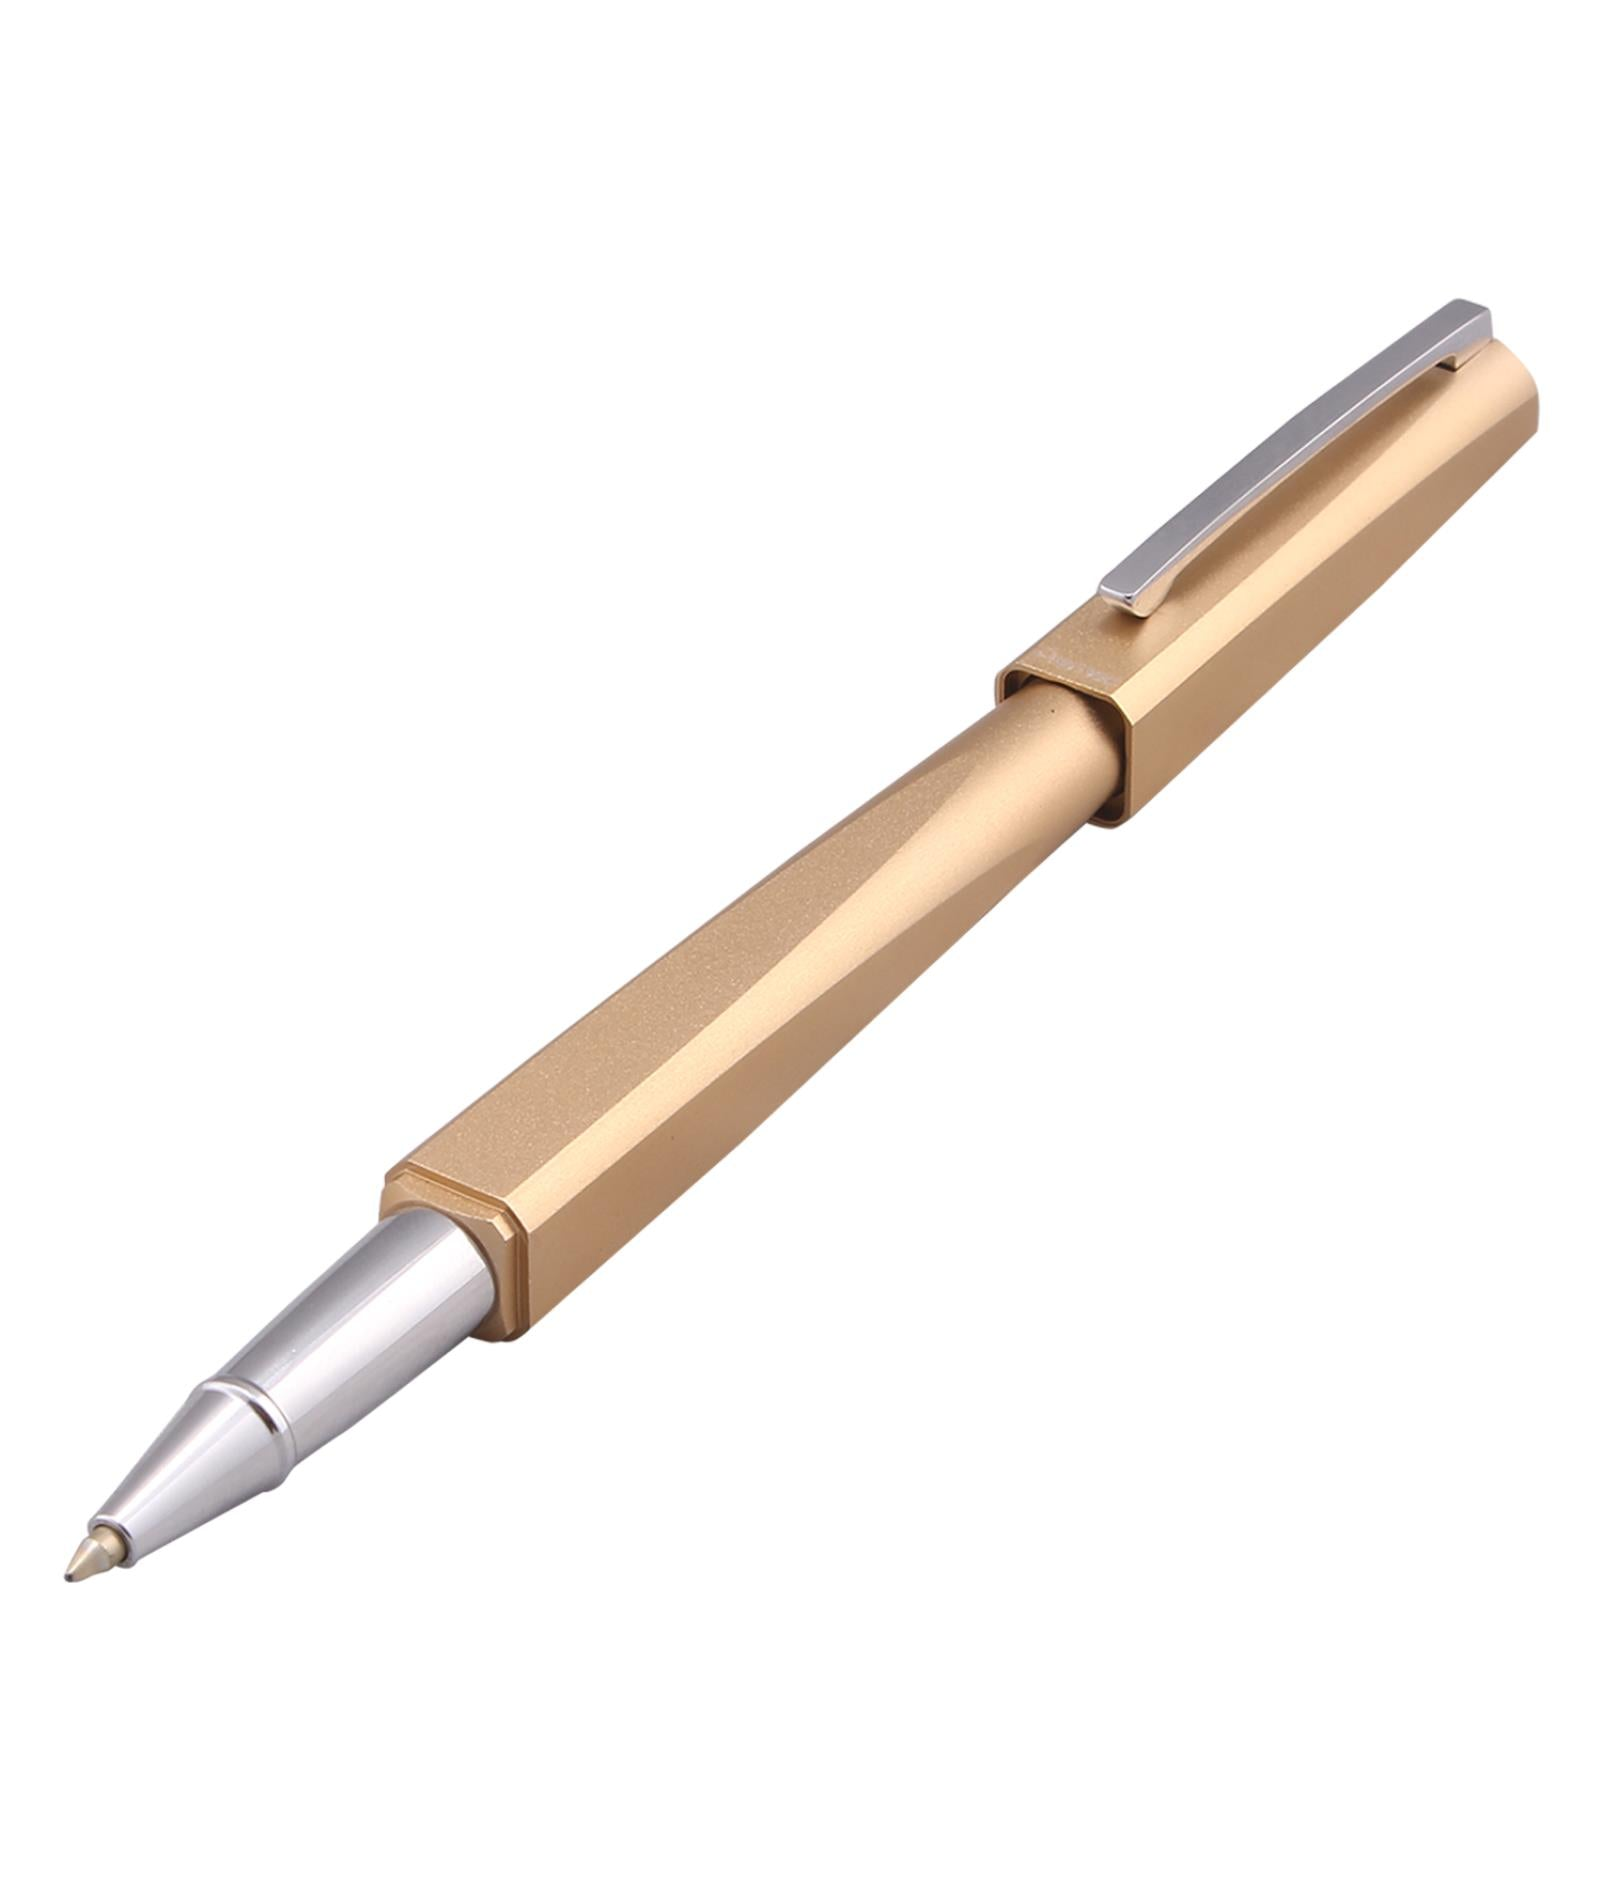 Premec Square Pen